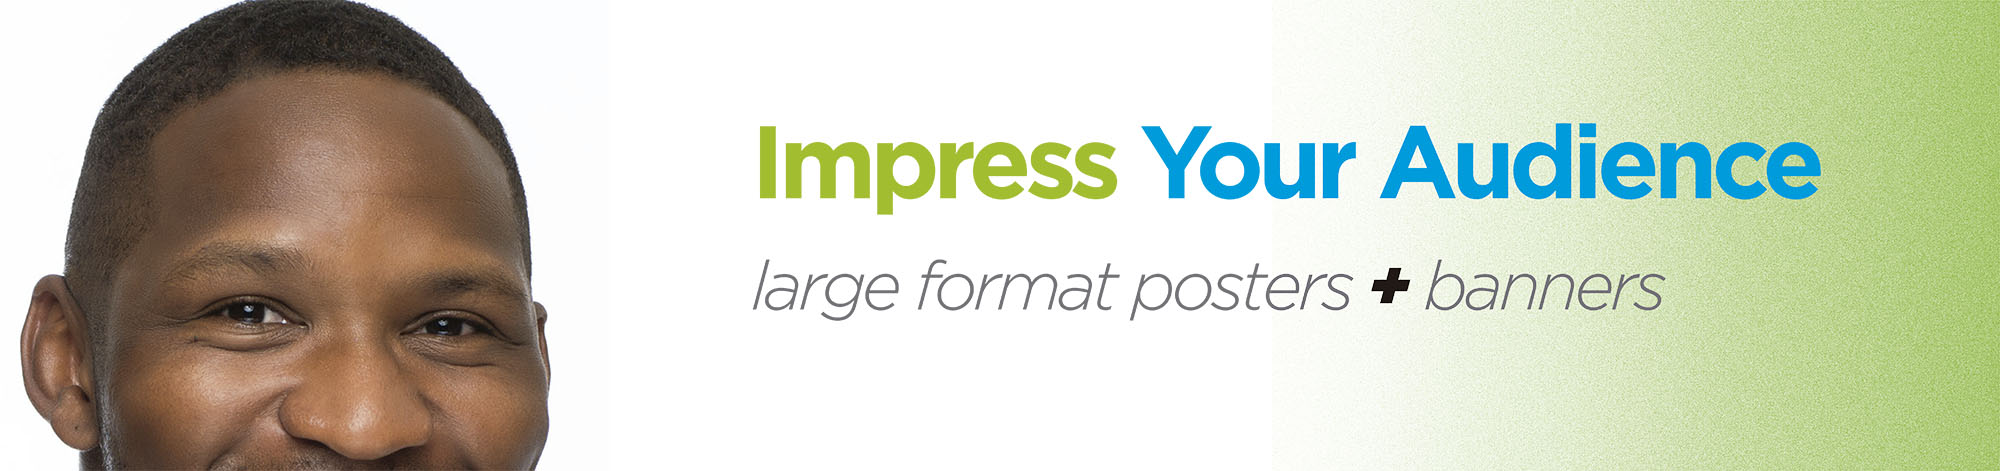 Impress YourAudience